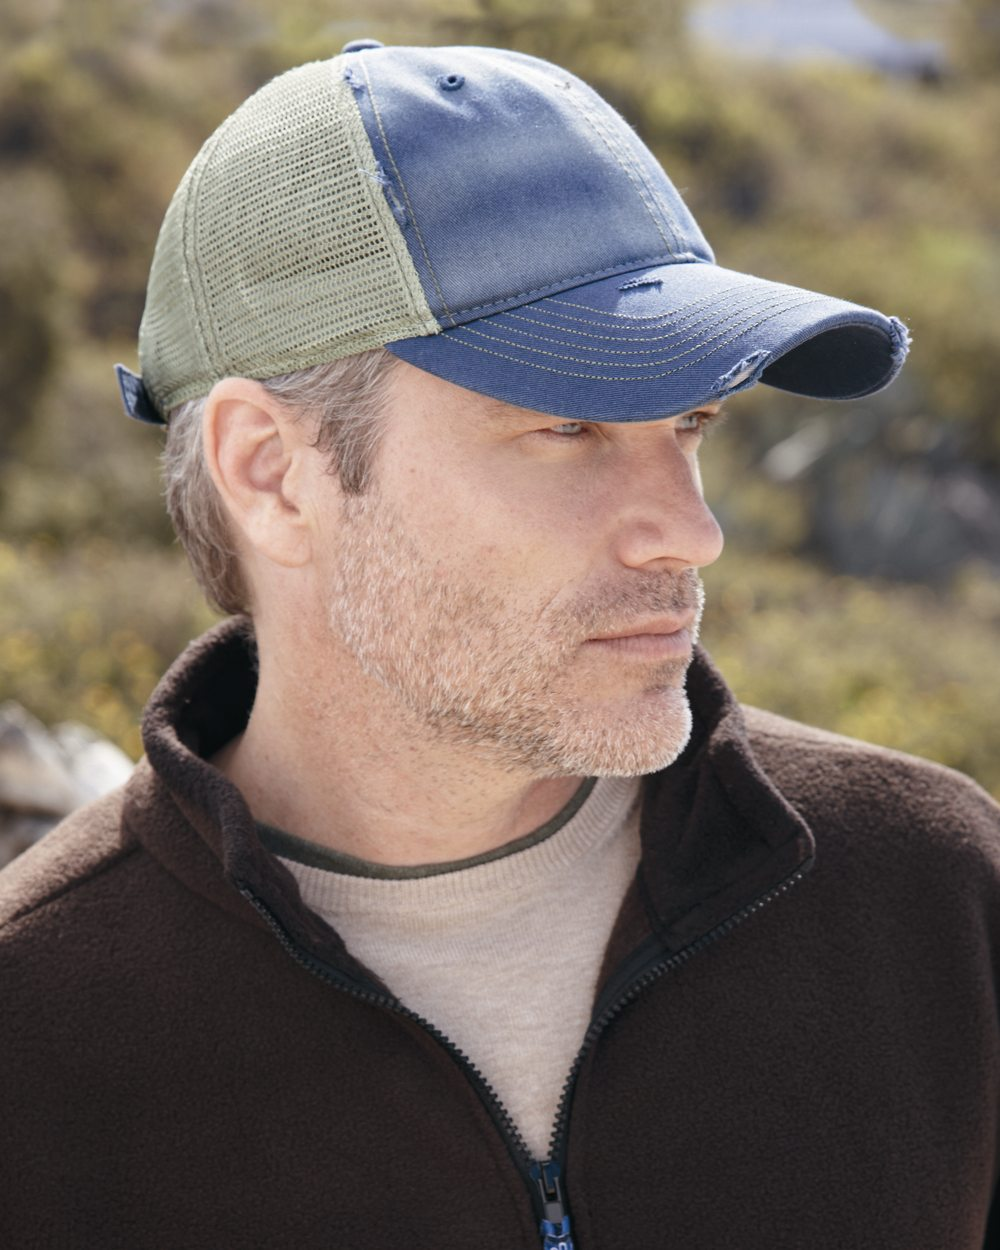 Sportsman 3150-Bounty Dirty Washed Mesh Cap